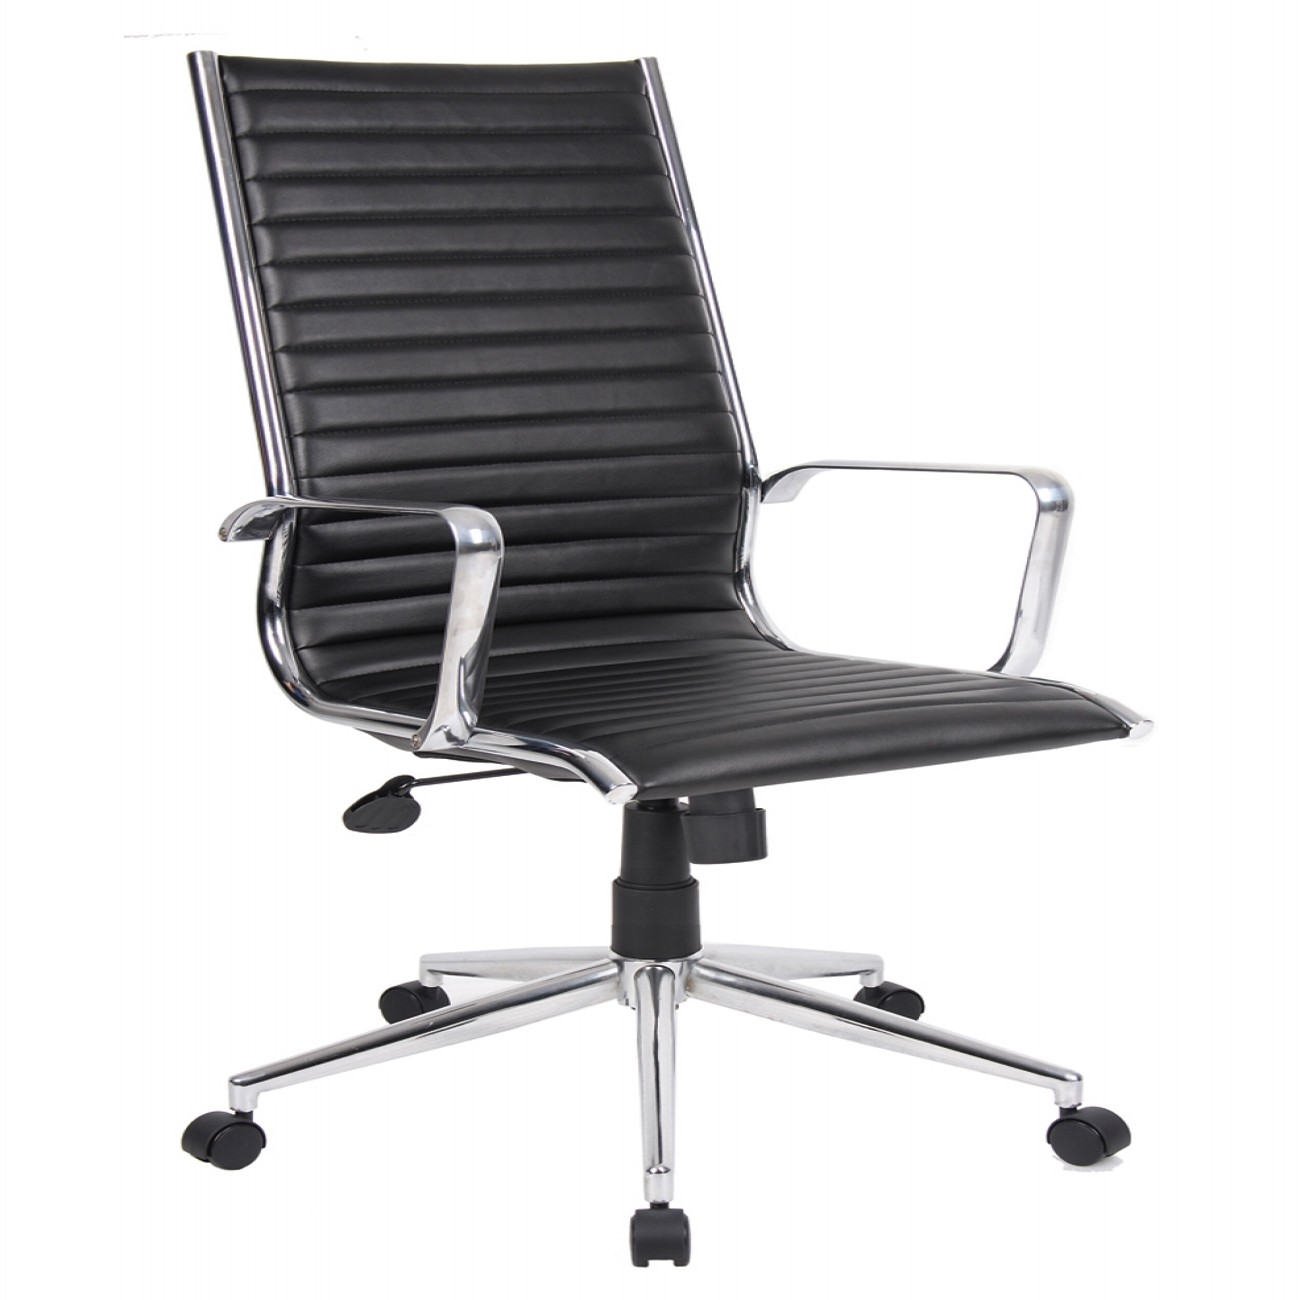 Executive Chair Executive Chair Bari Leather Chair 121 Office Furniture